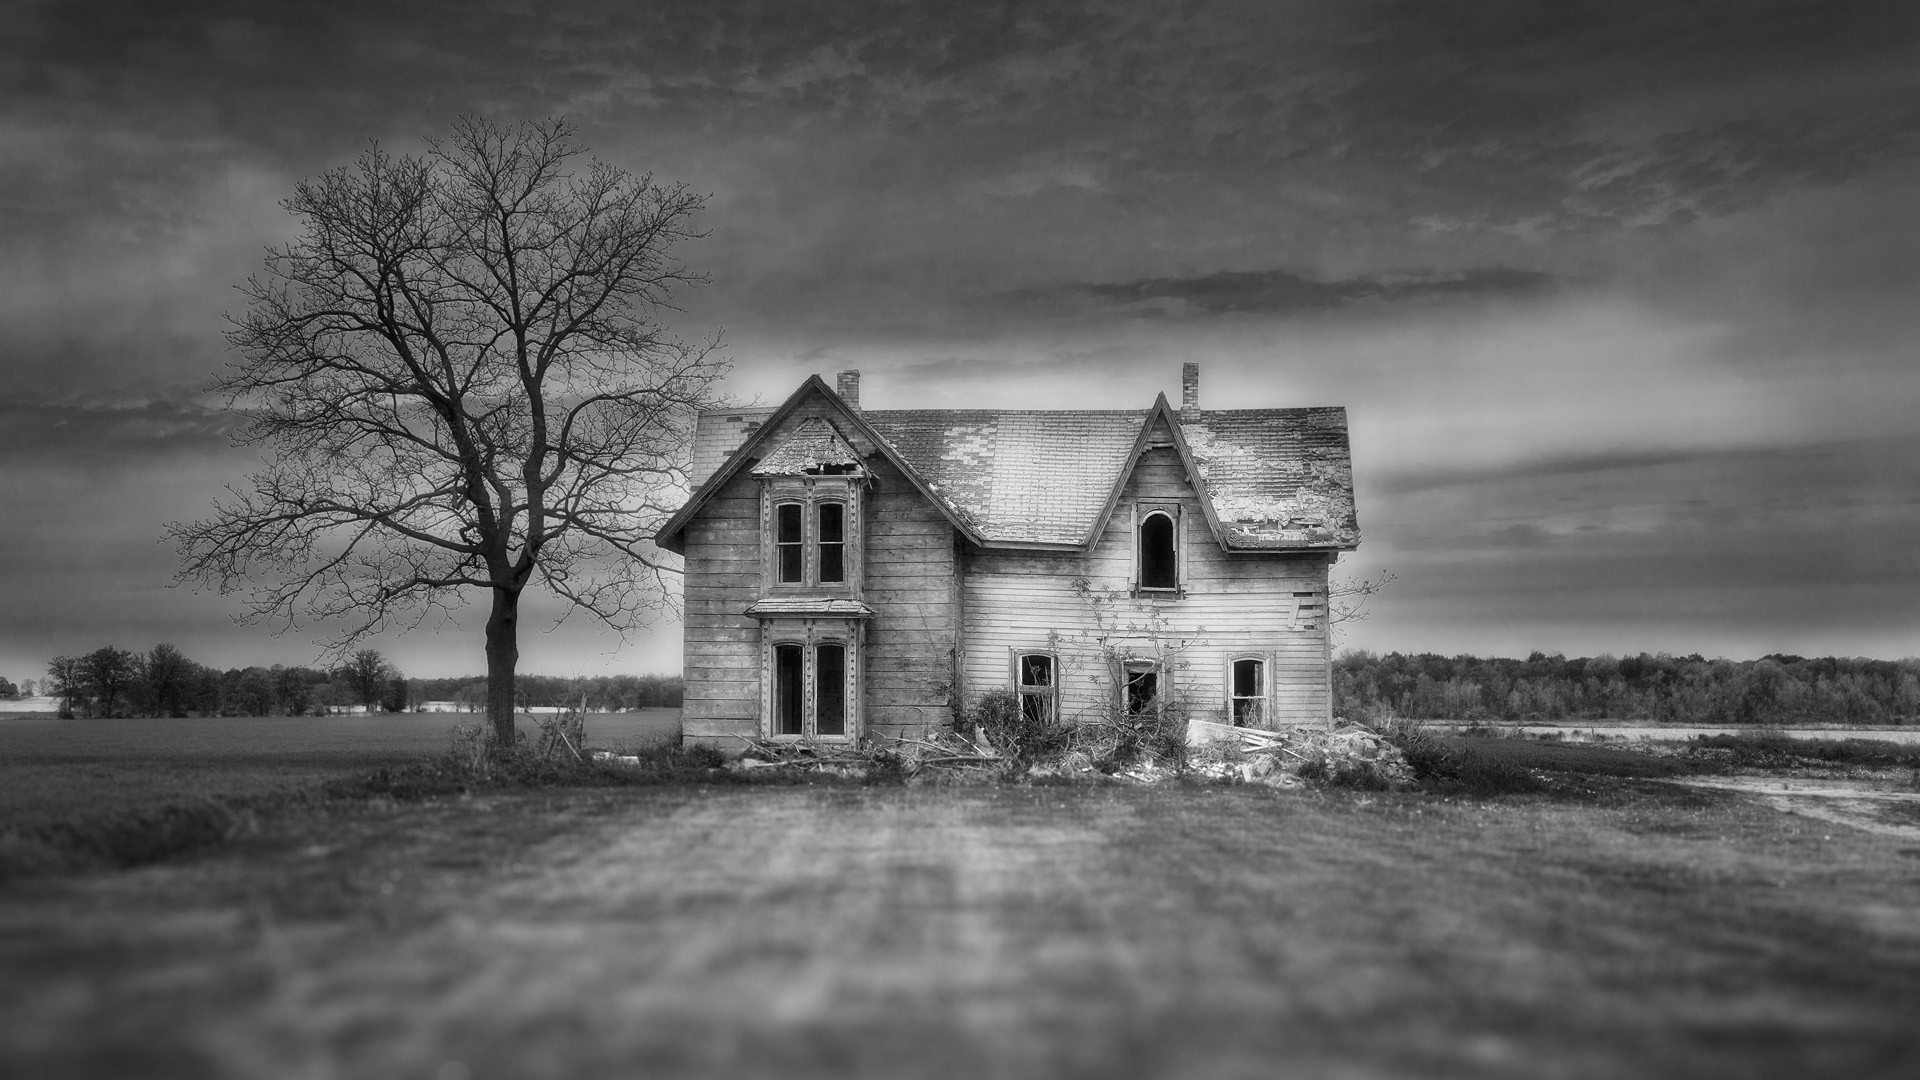 Haunted house in focus wallpaper 16640 for Best home wallpaper